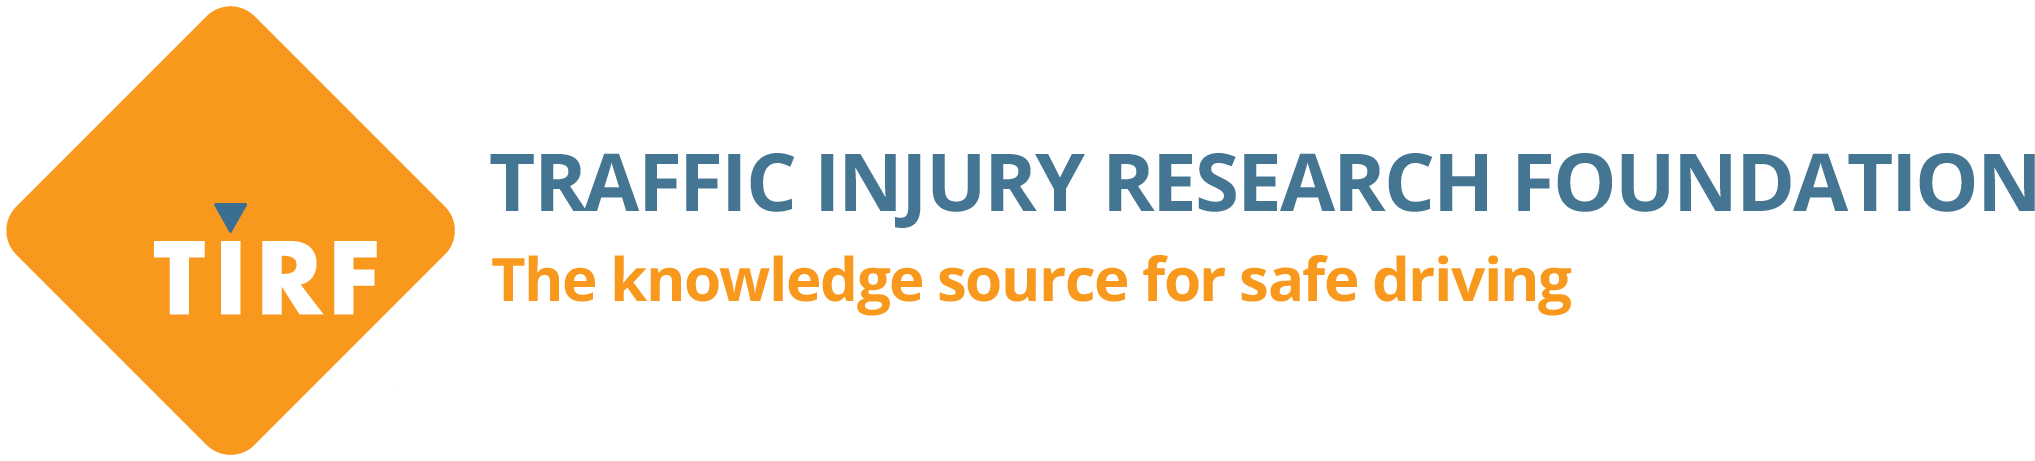 Traffic Injury Research Foundation